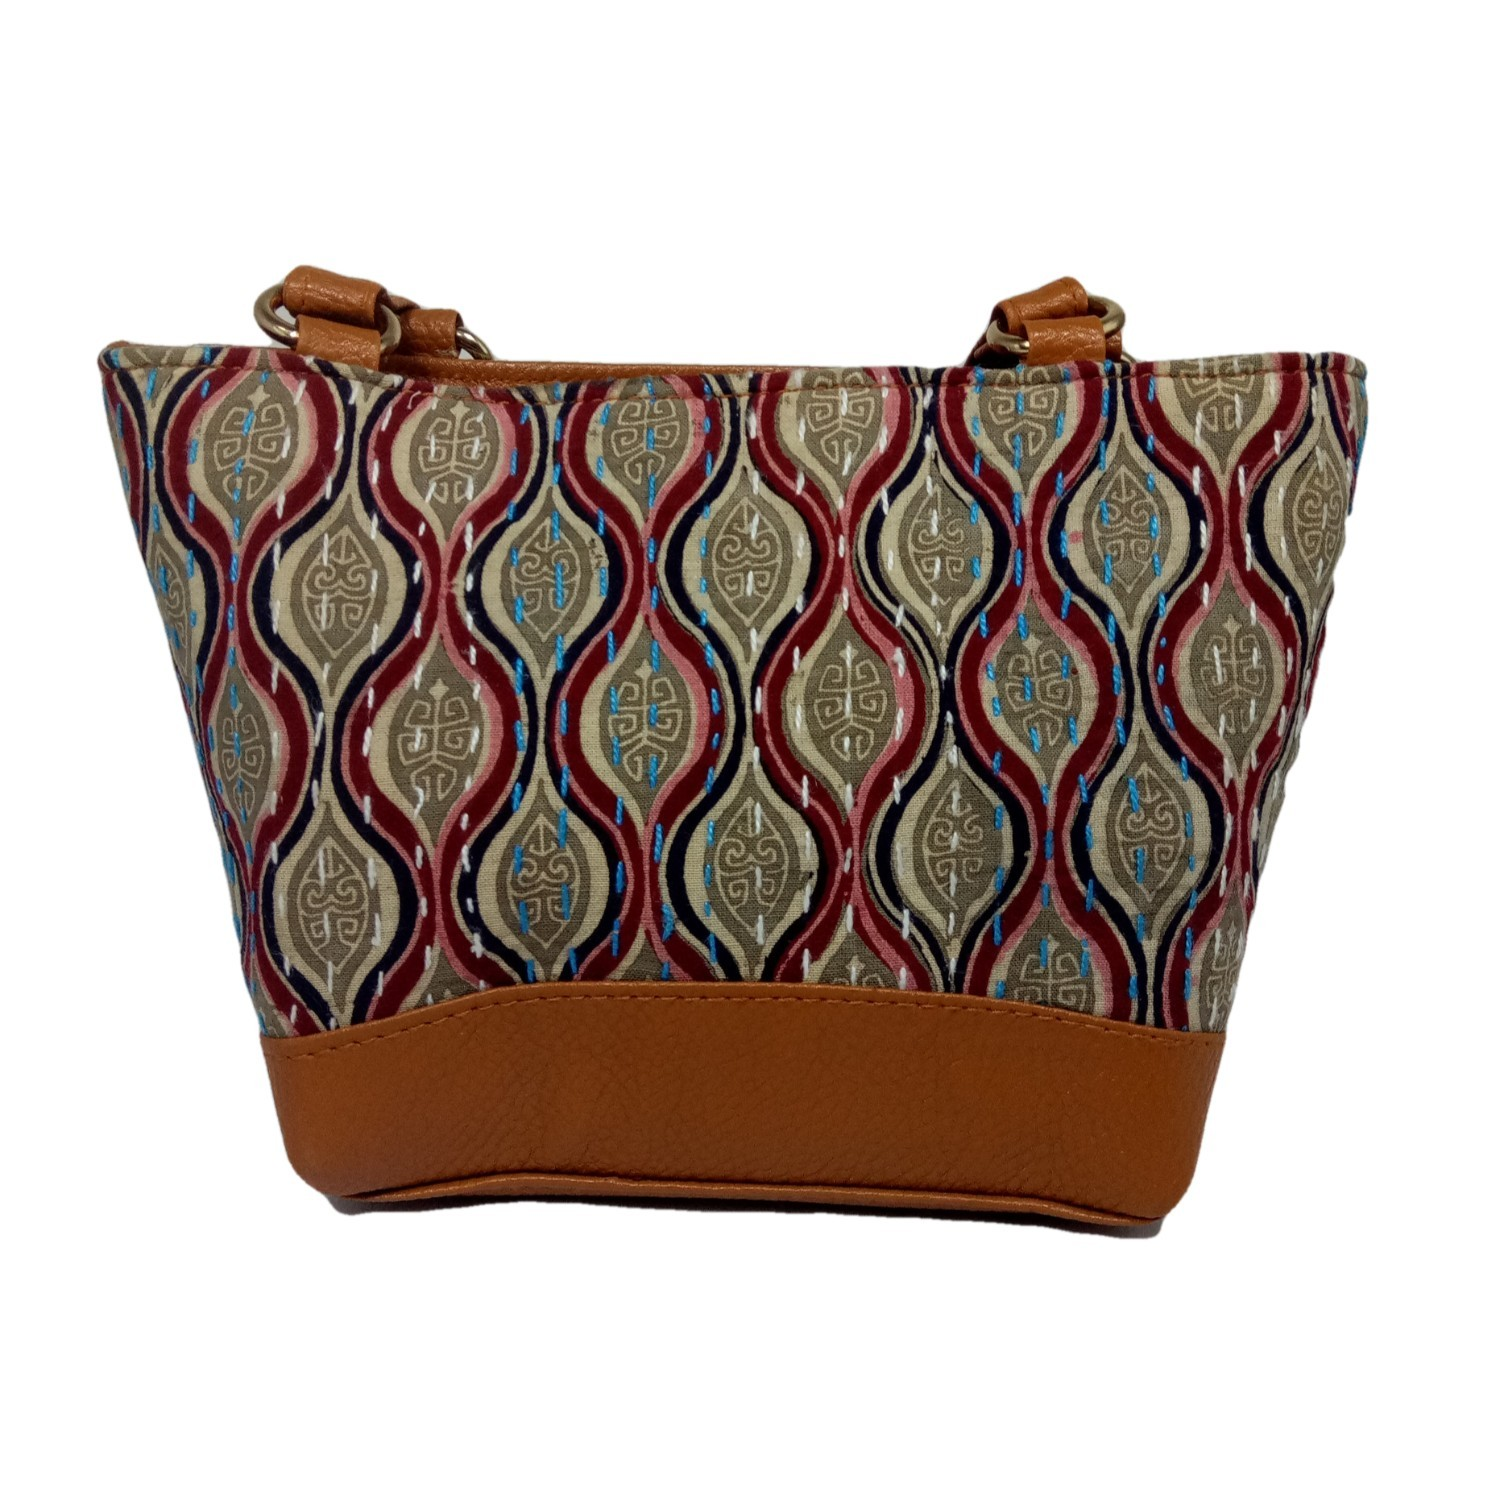 Handmade Excellent Cream Genuine Shoulder Bag by Women Self Help Groups of Rajasthan